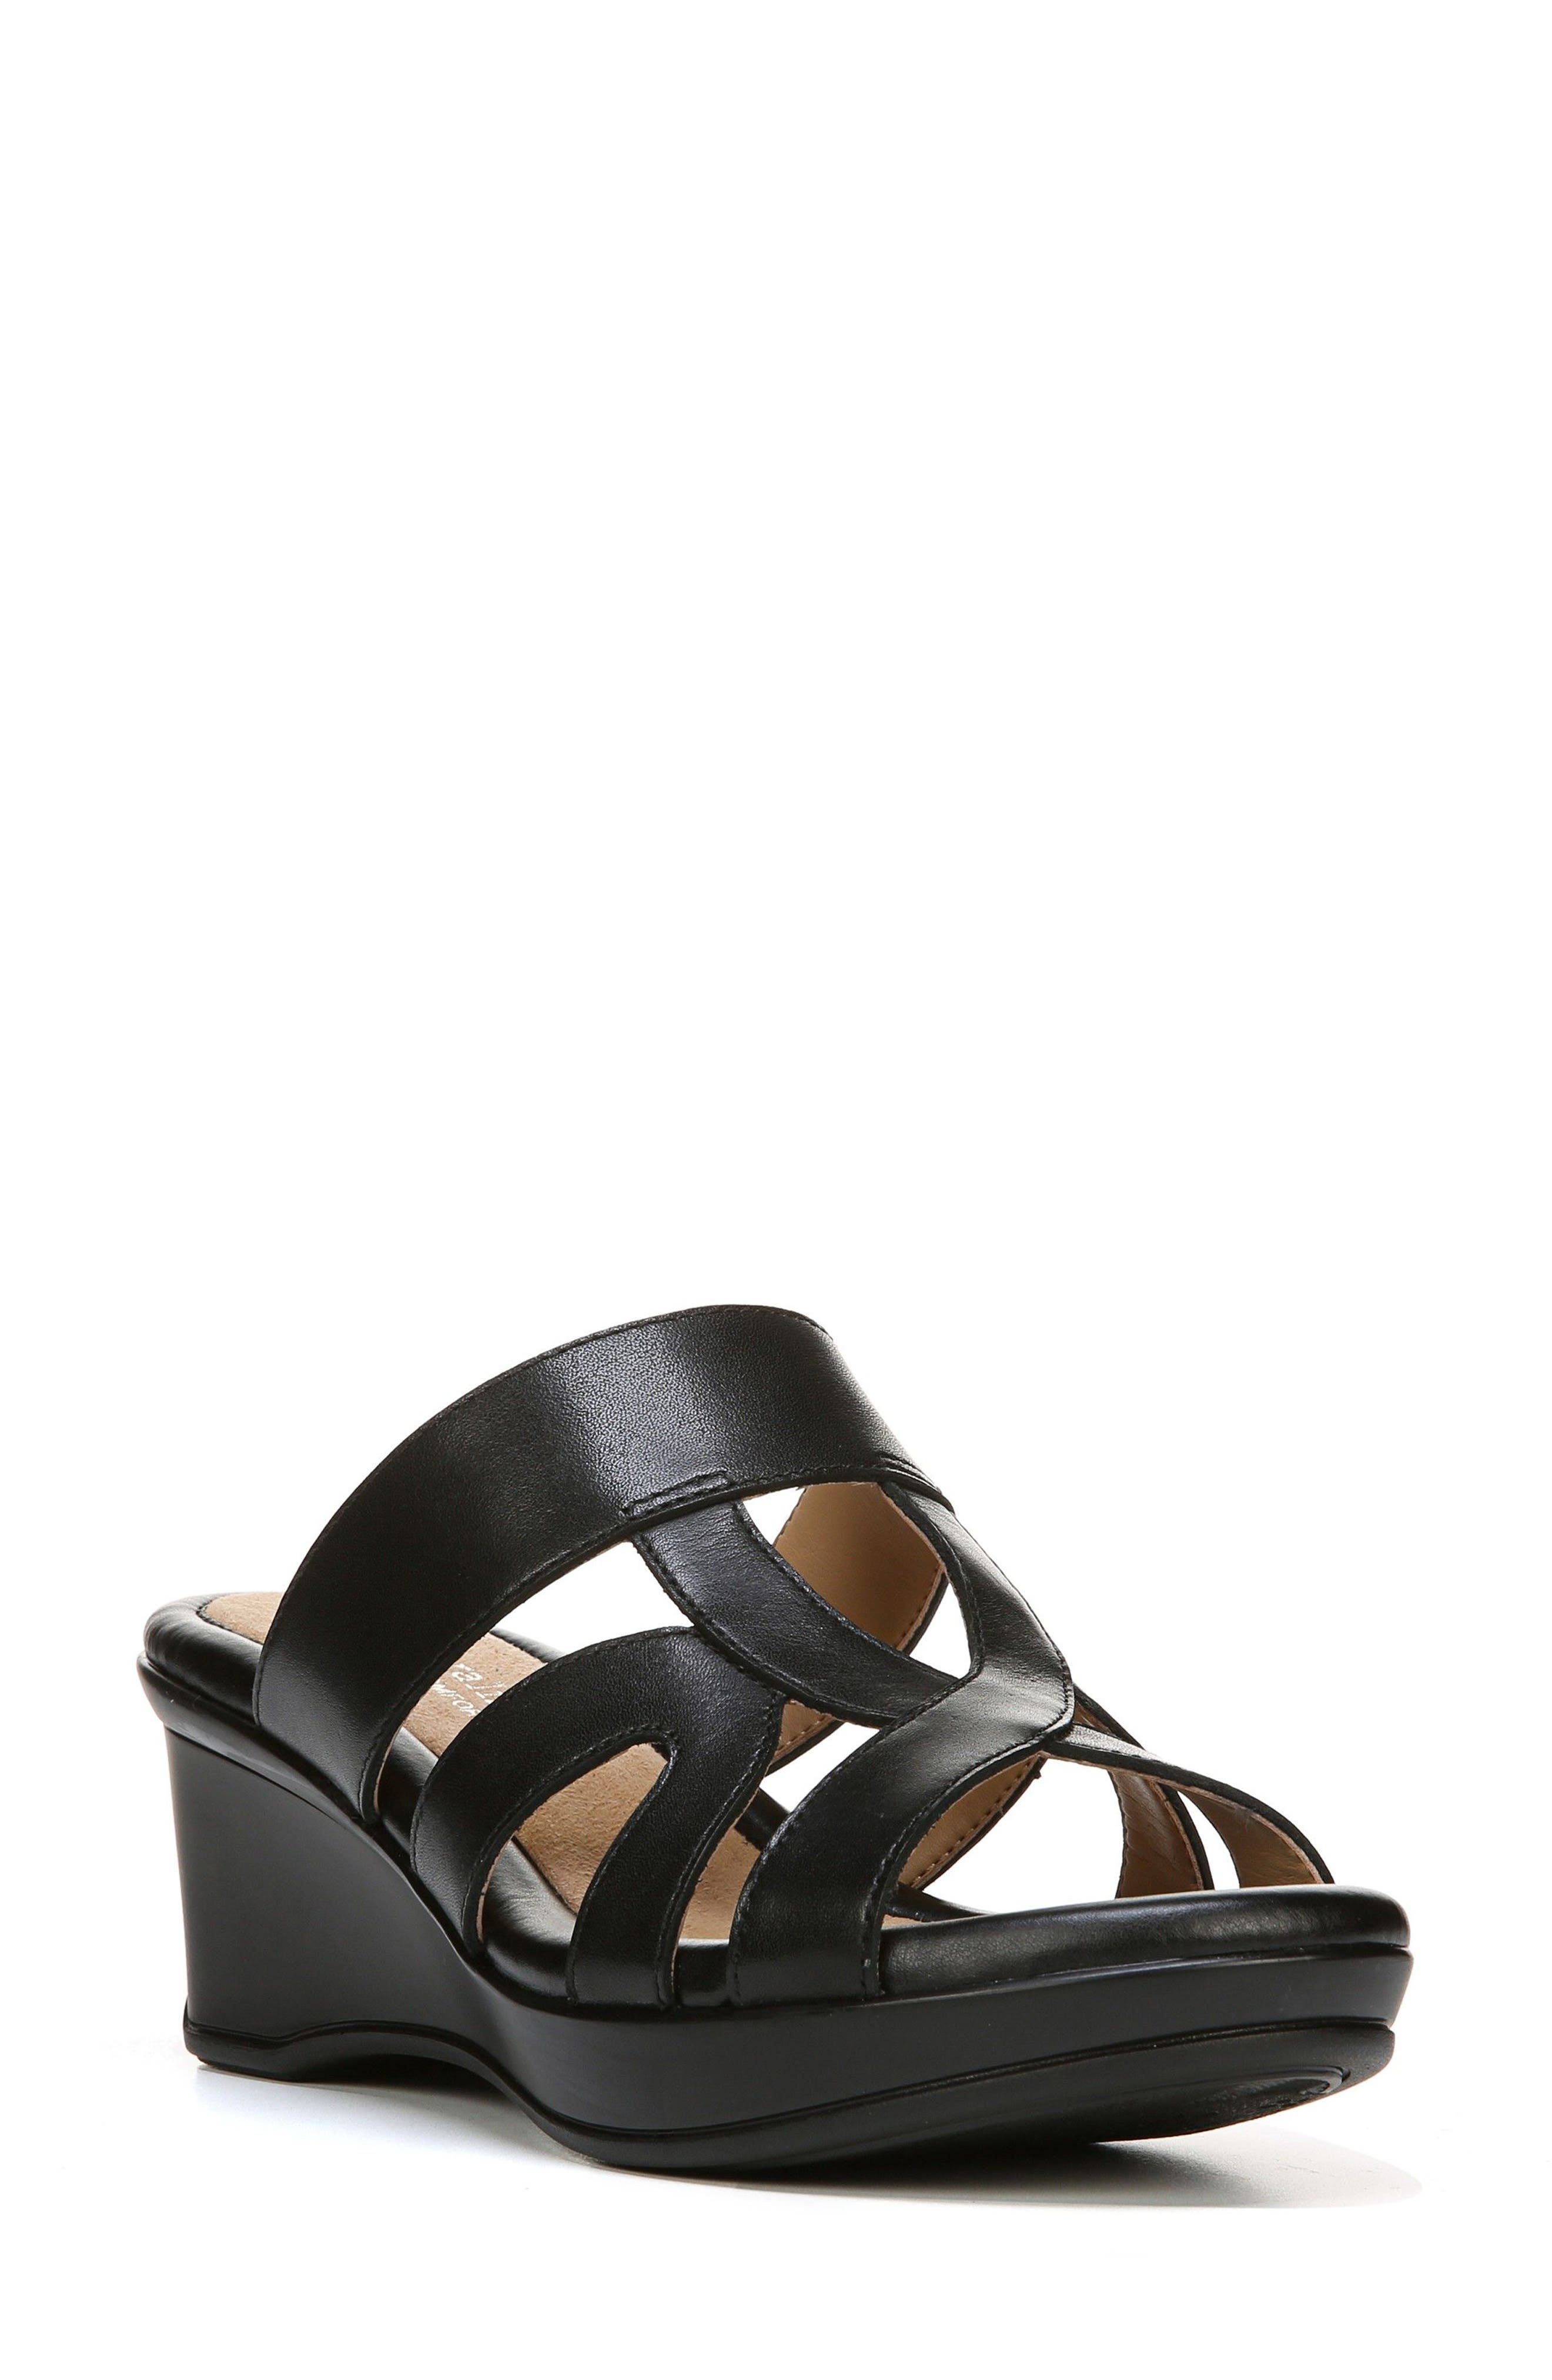 Vanity Wedge Sandal,                             Main thumbnail 1, color,                             BLACK LEATHER